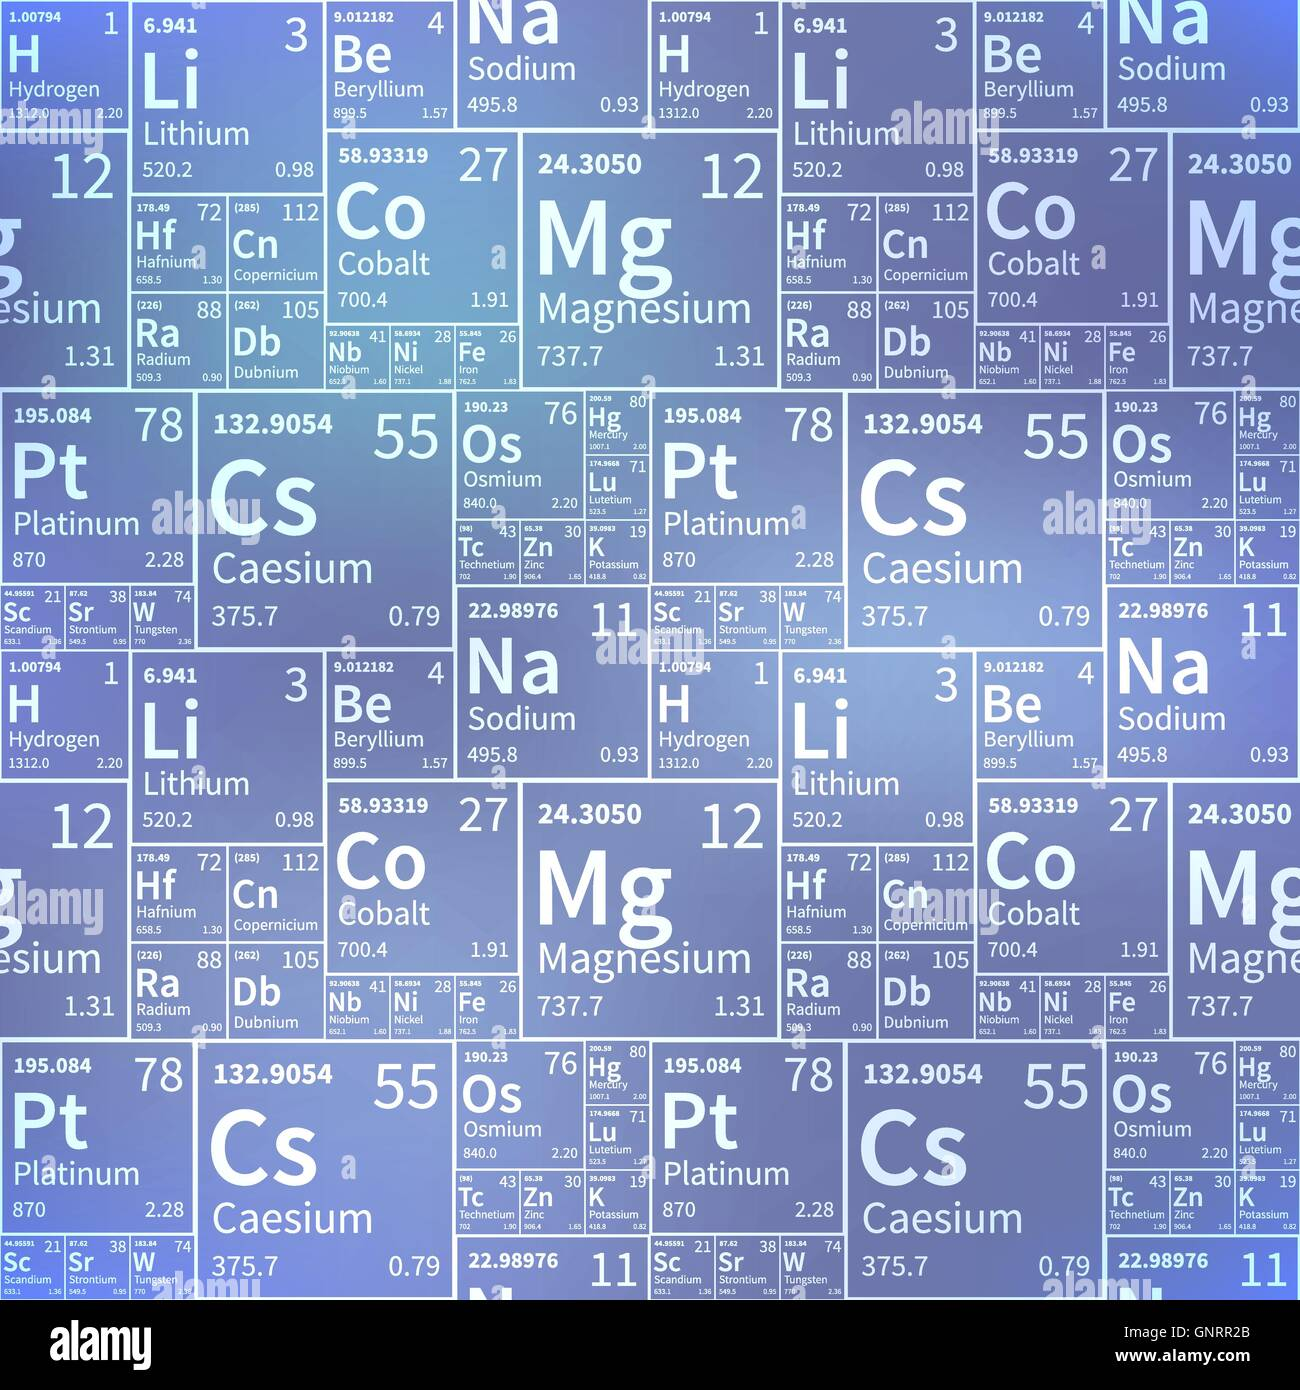 chemical elements from periodic table white icons on